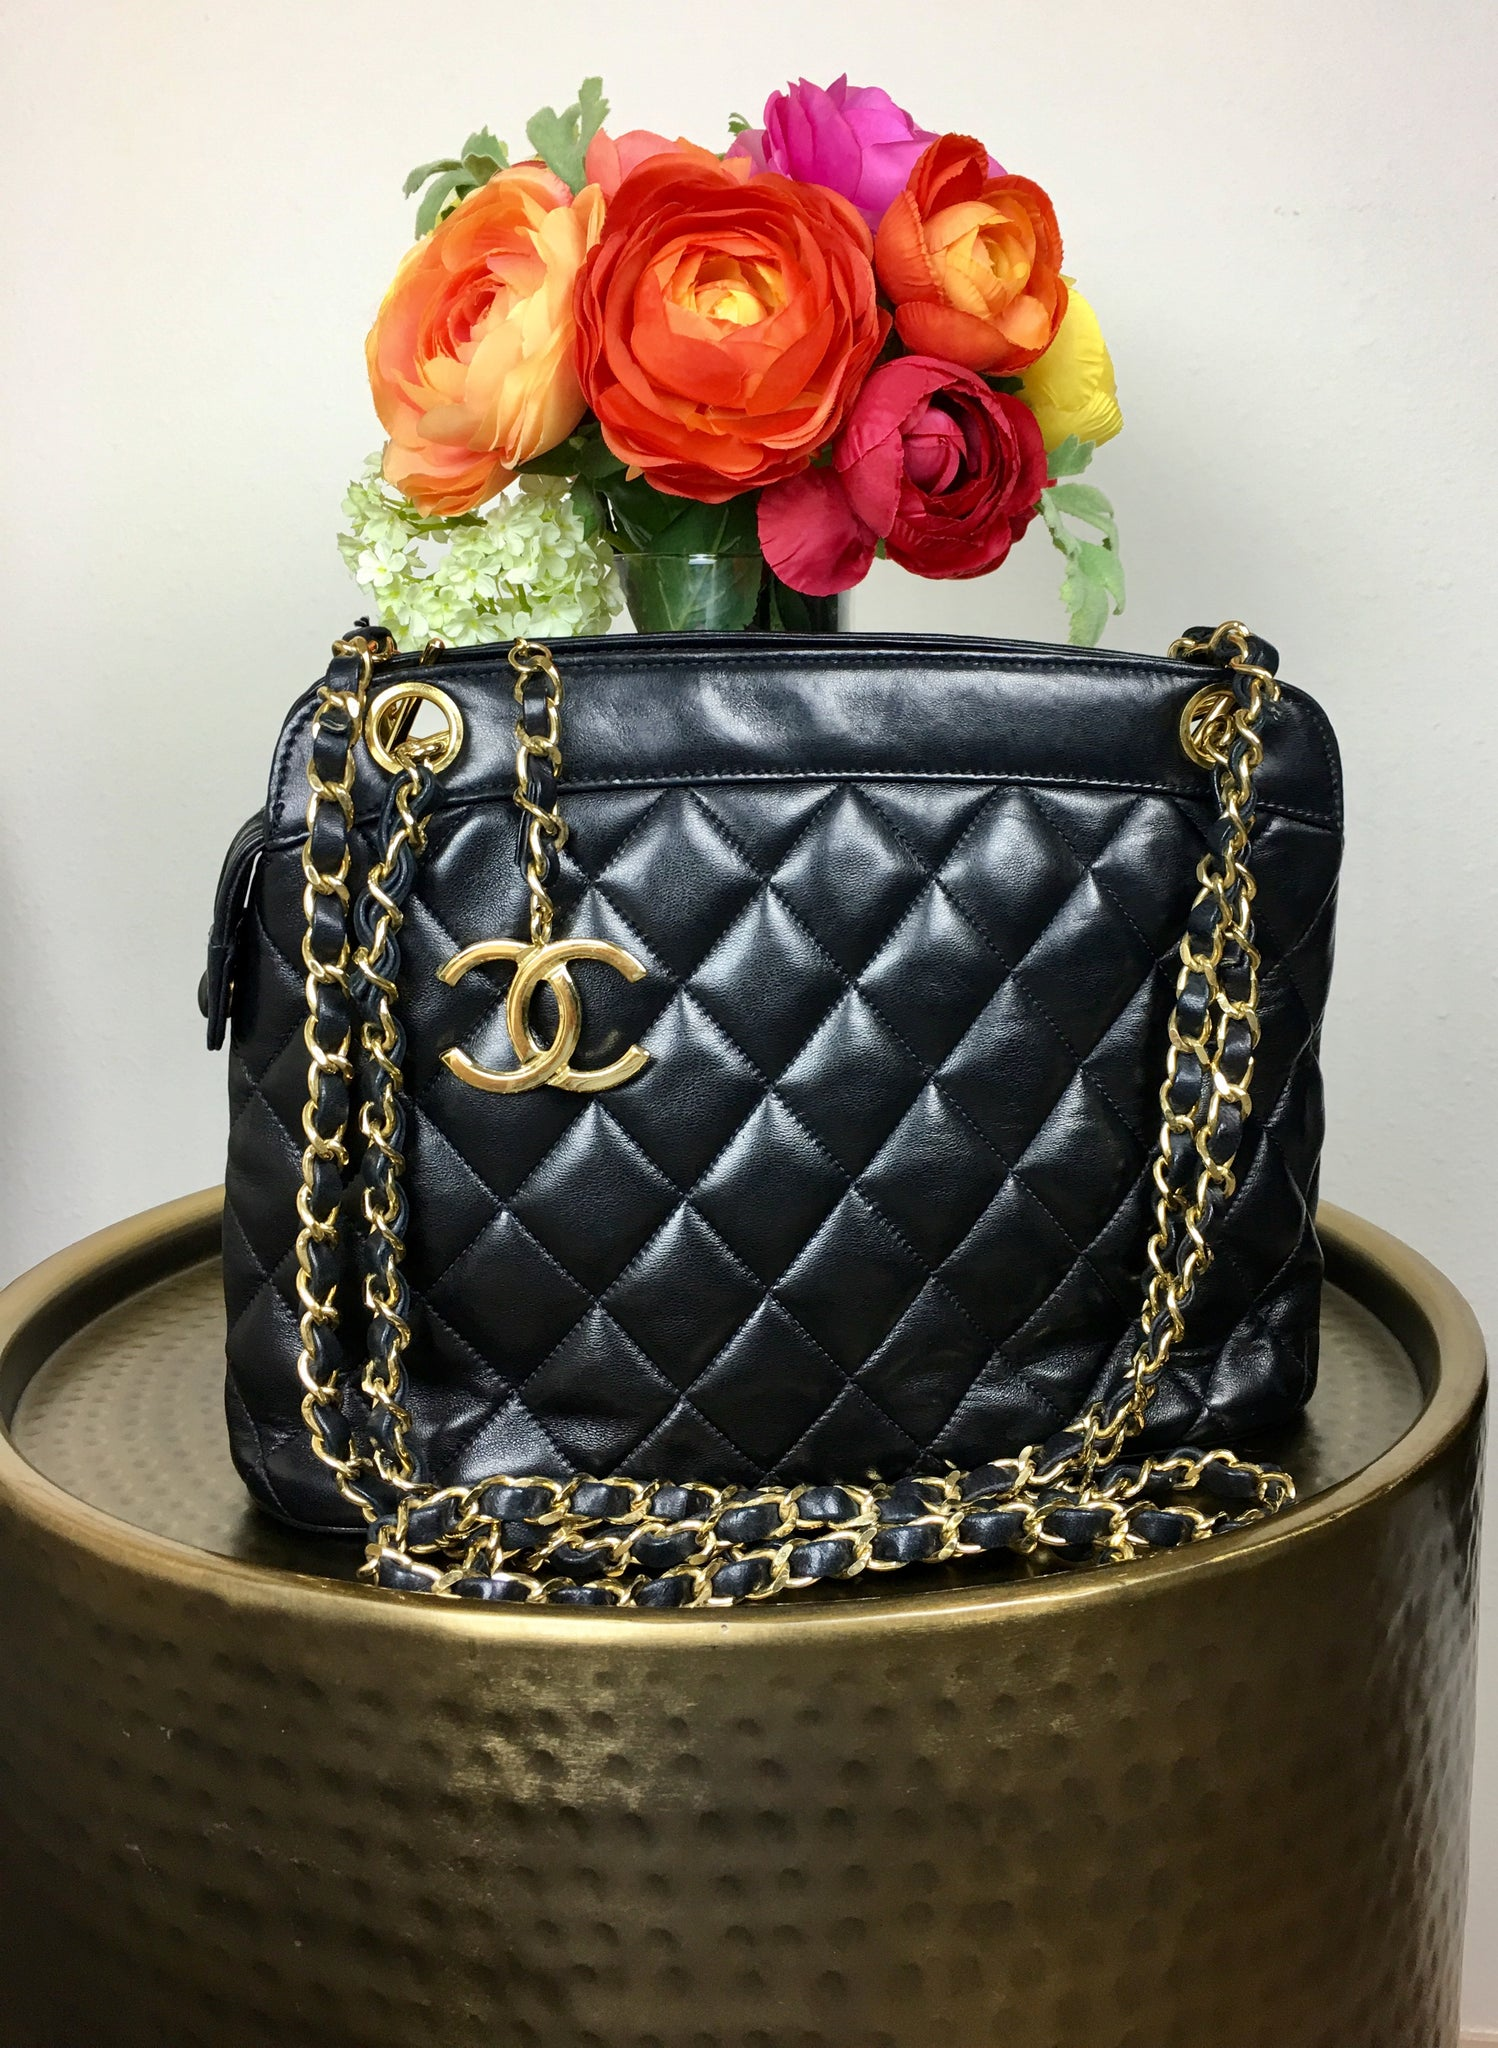 CHANEL Black Lambskin Quilted Shoulder Bag